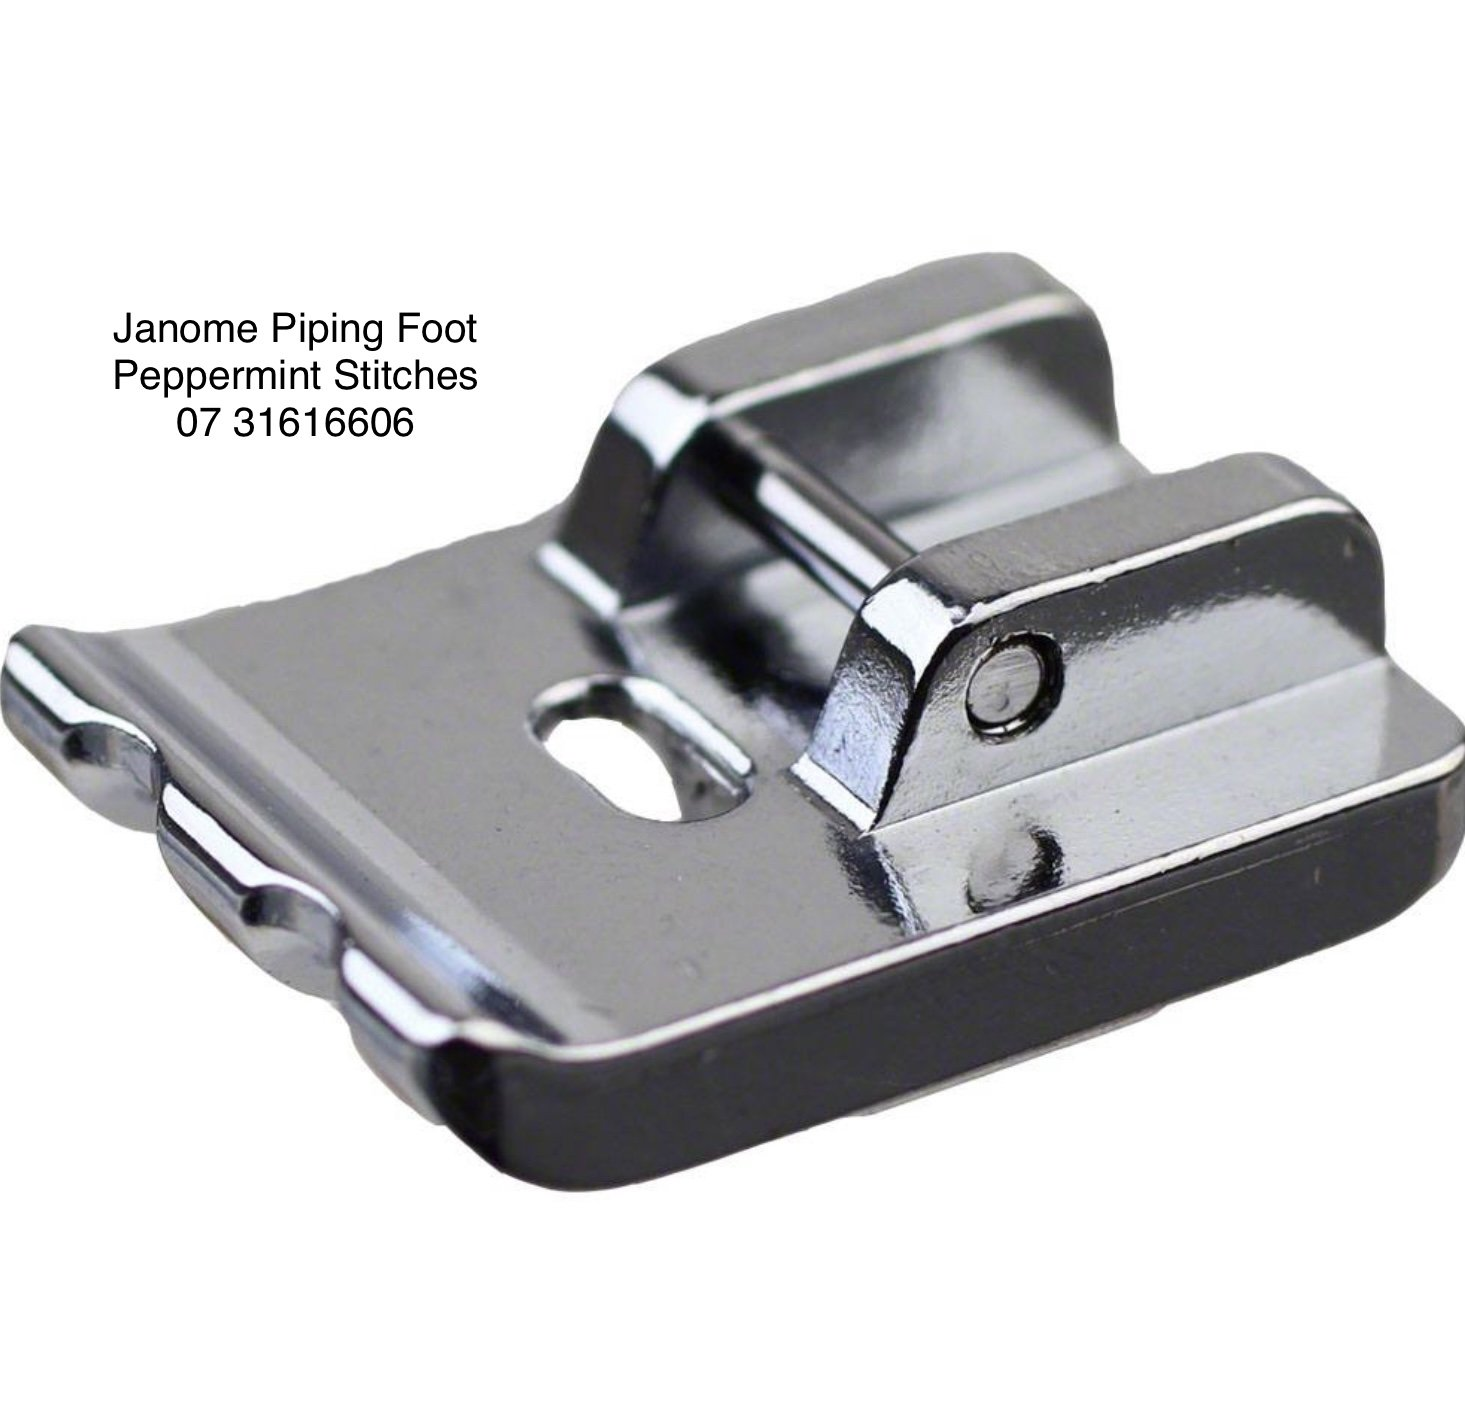 Janome Piping Foot 7mm Top Loading Machine